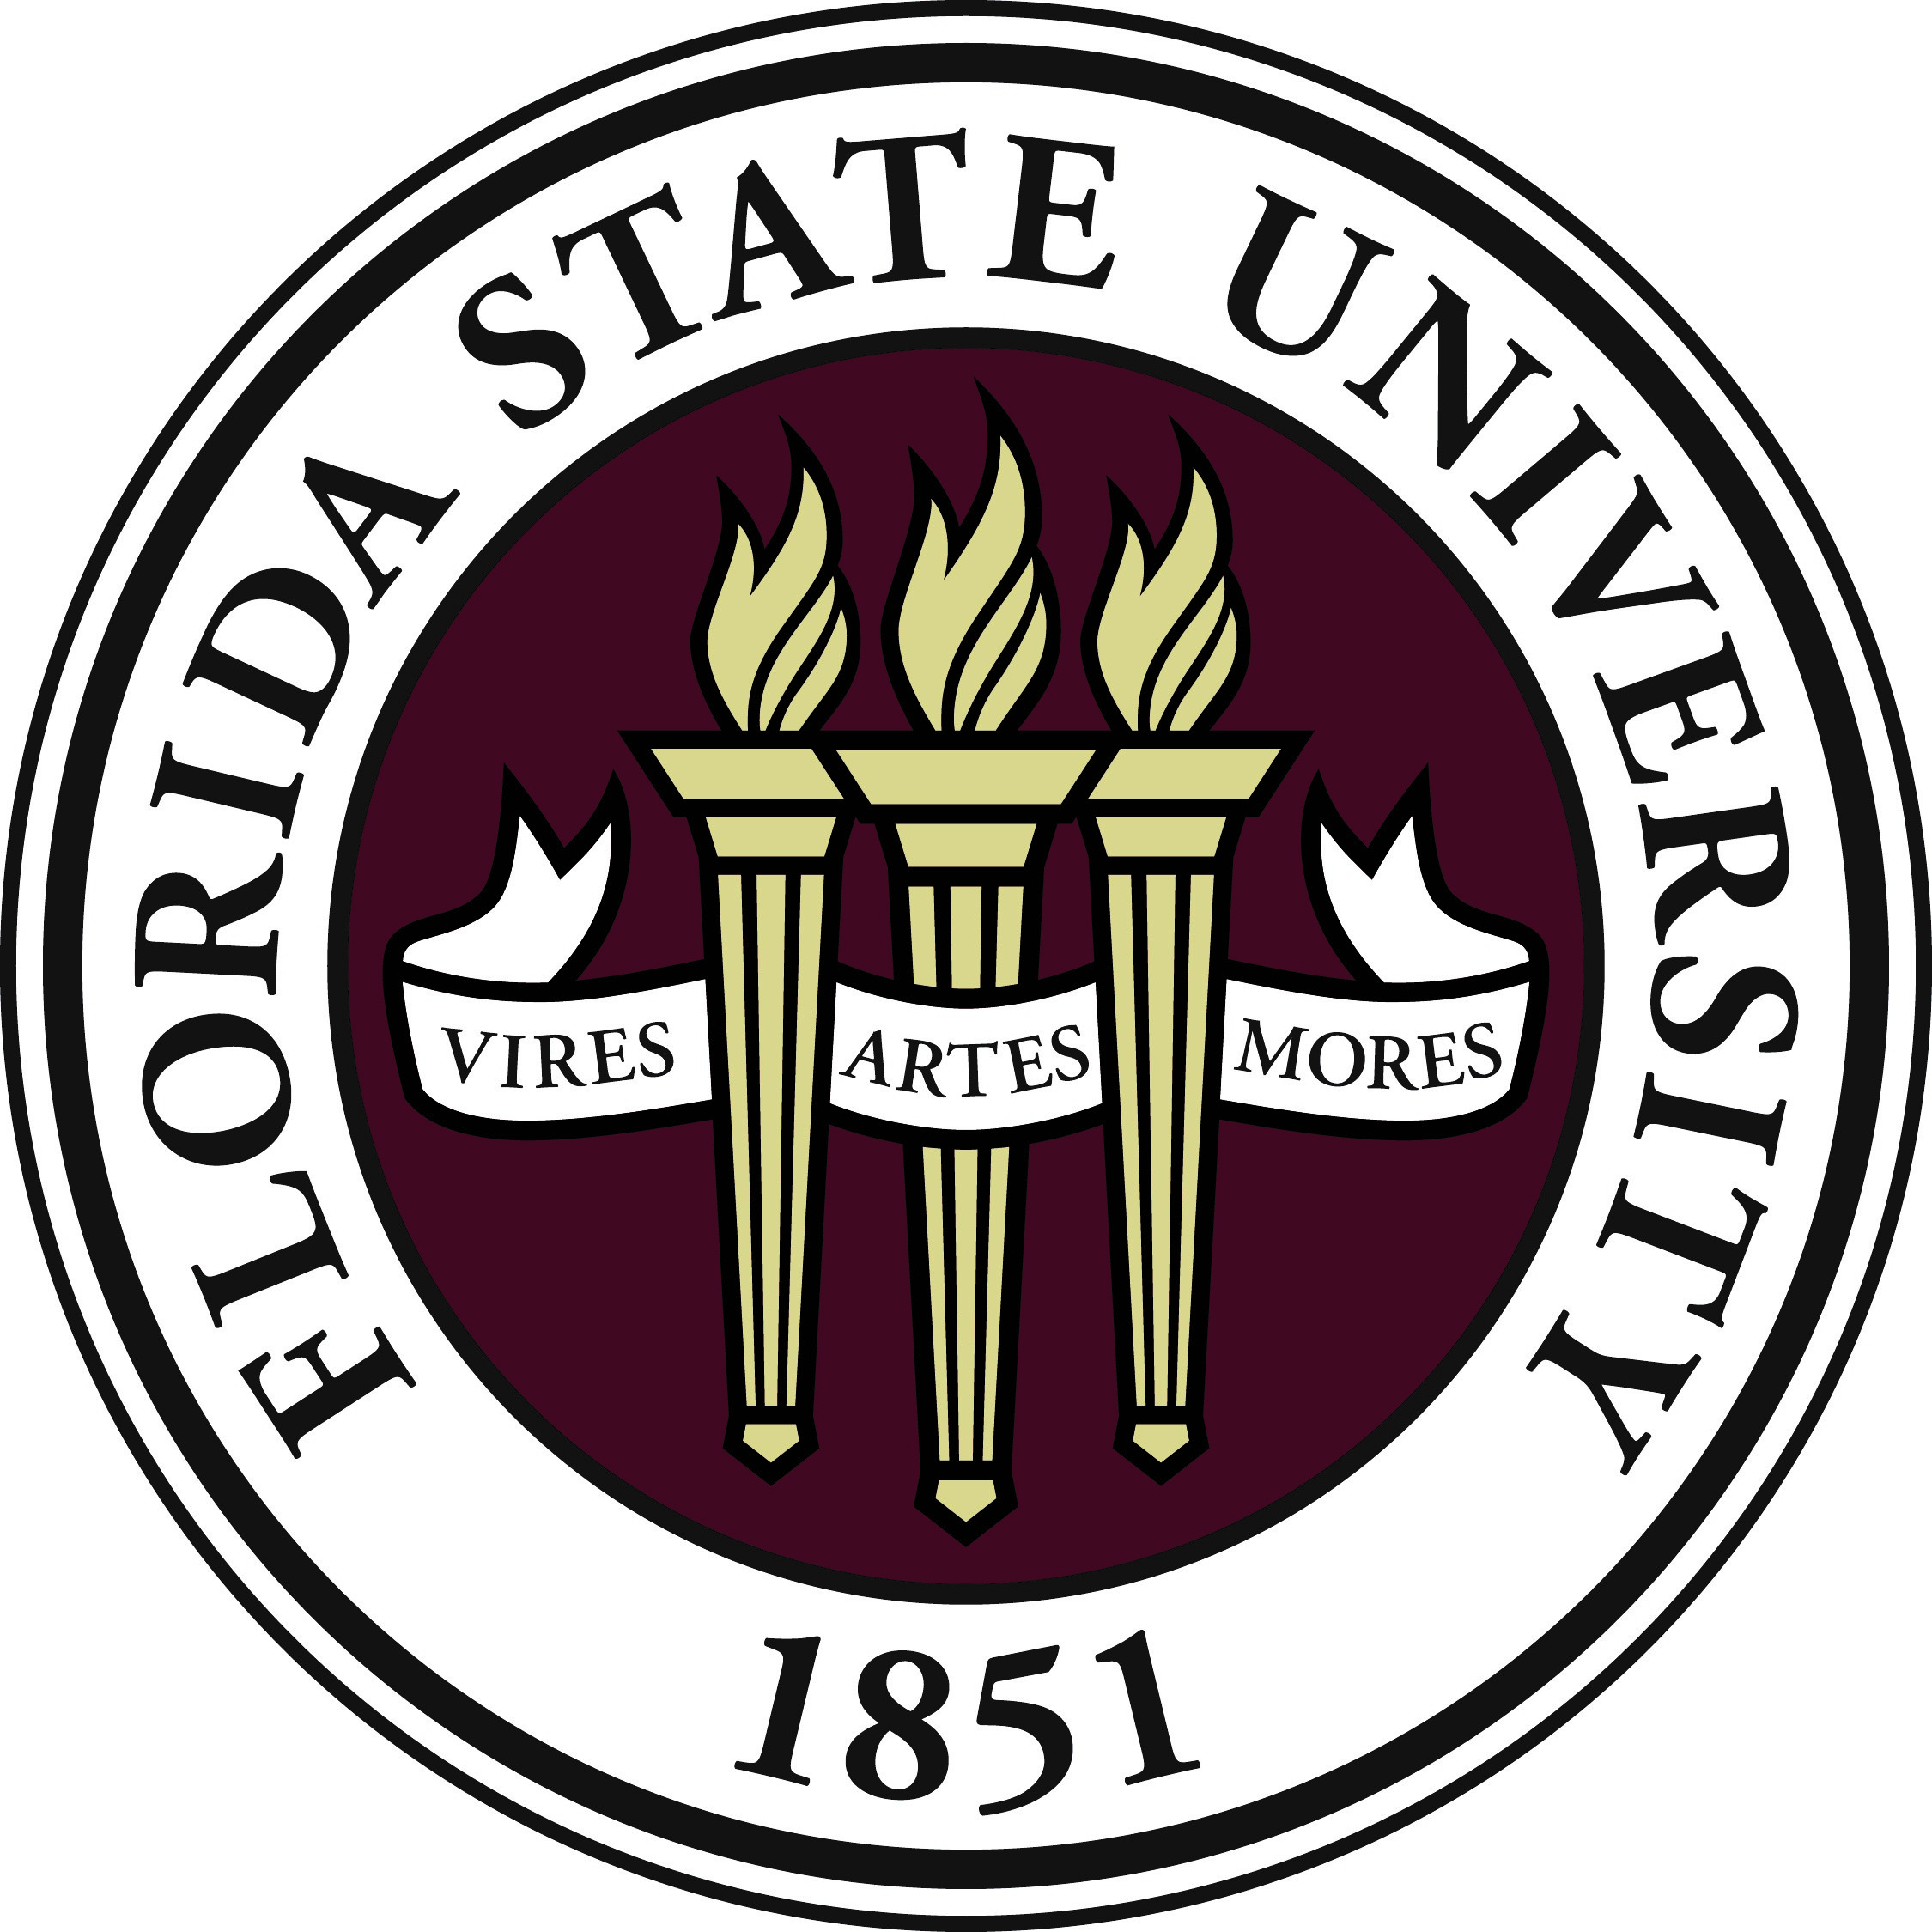 Florida State University Division of Student Affairs